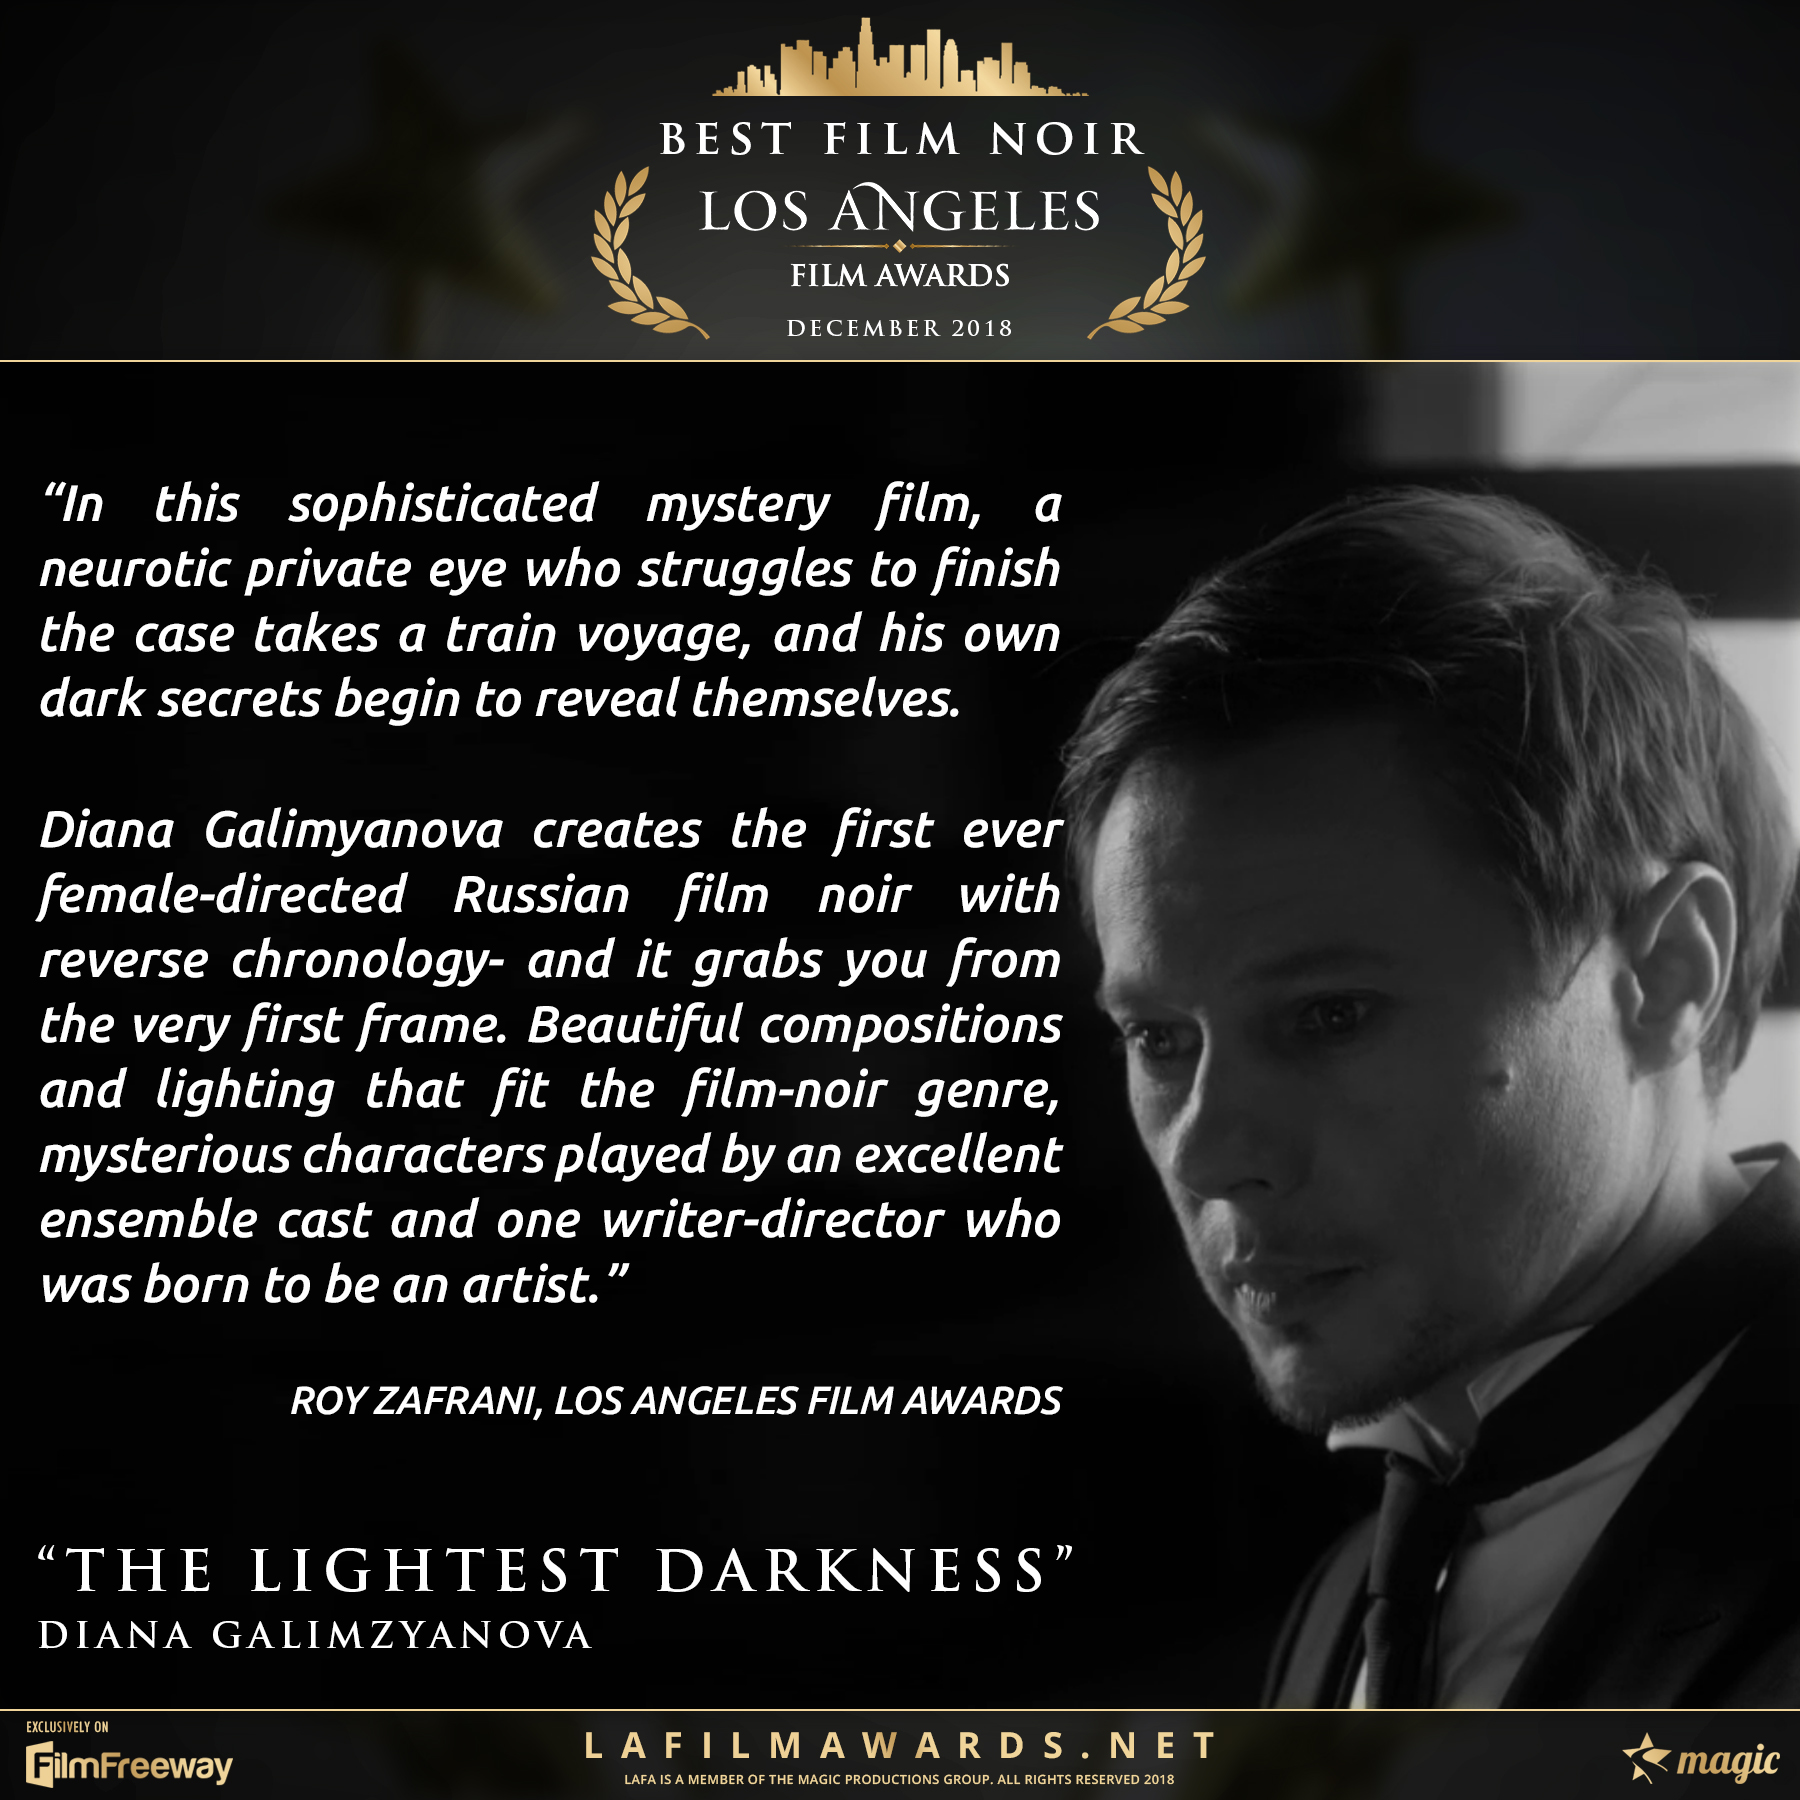 The Lightest Darkness - Review